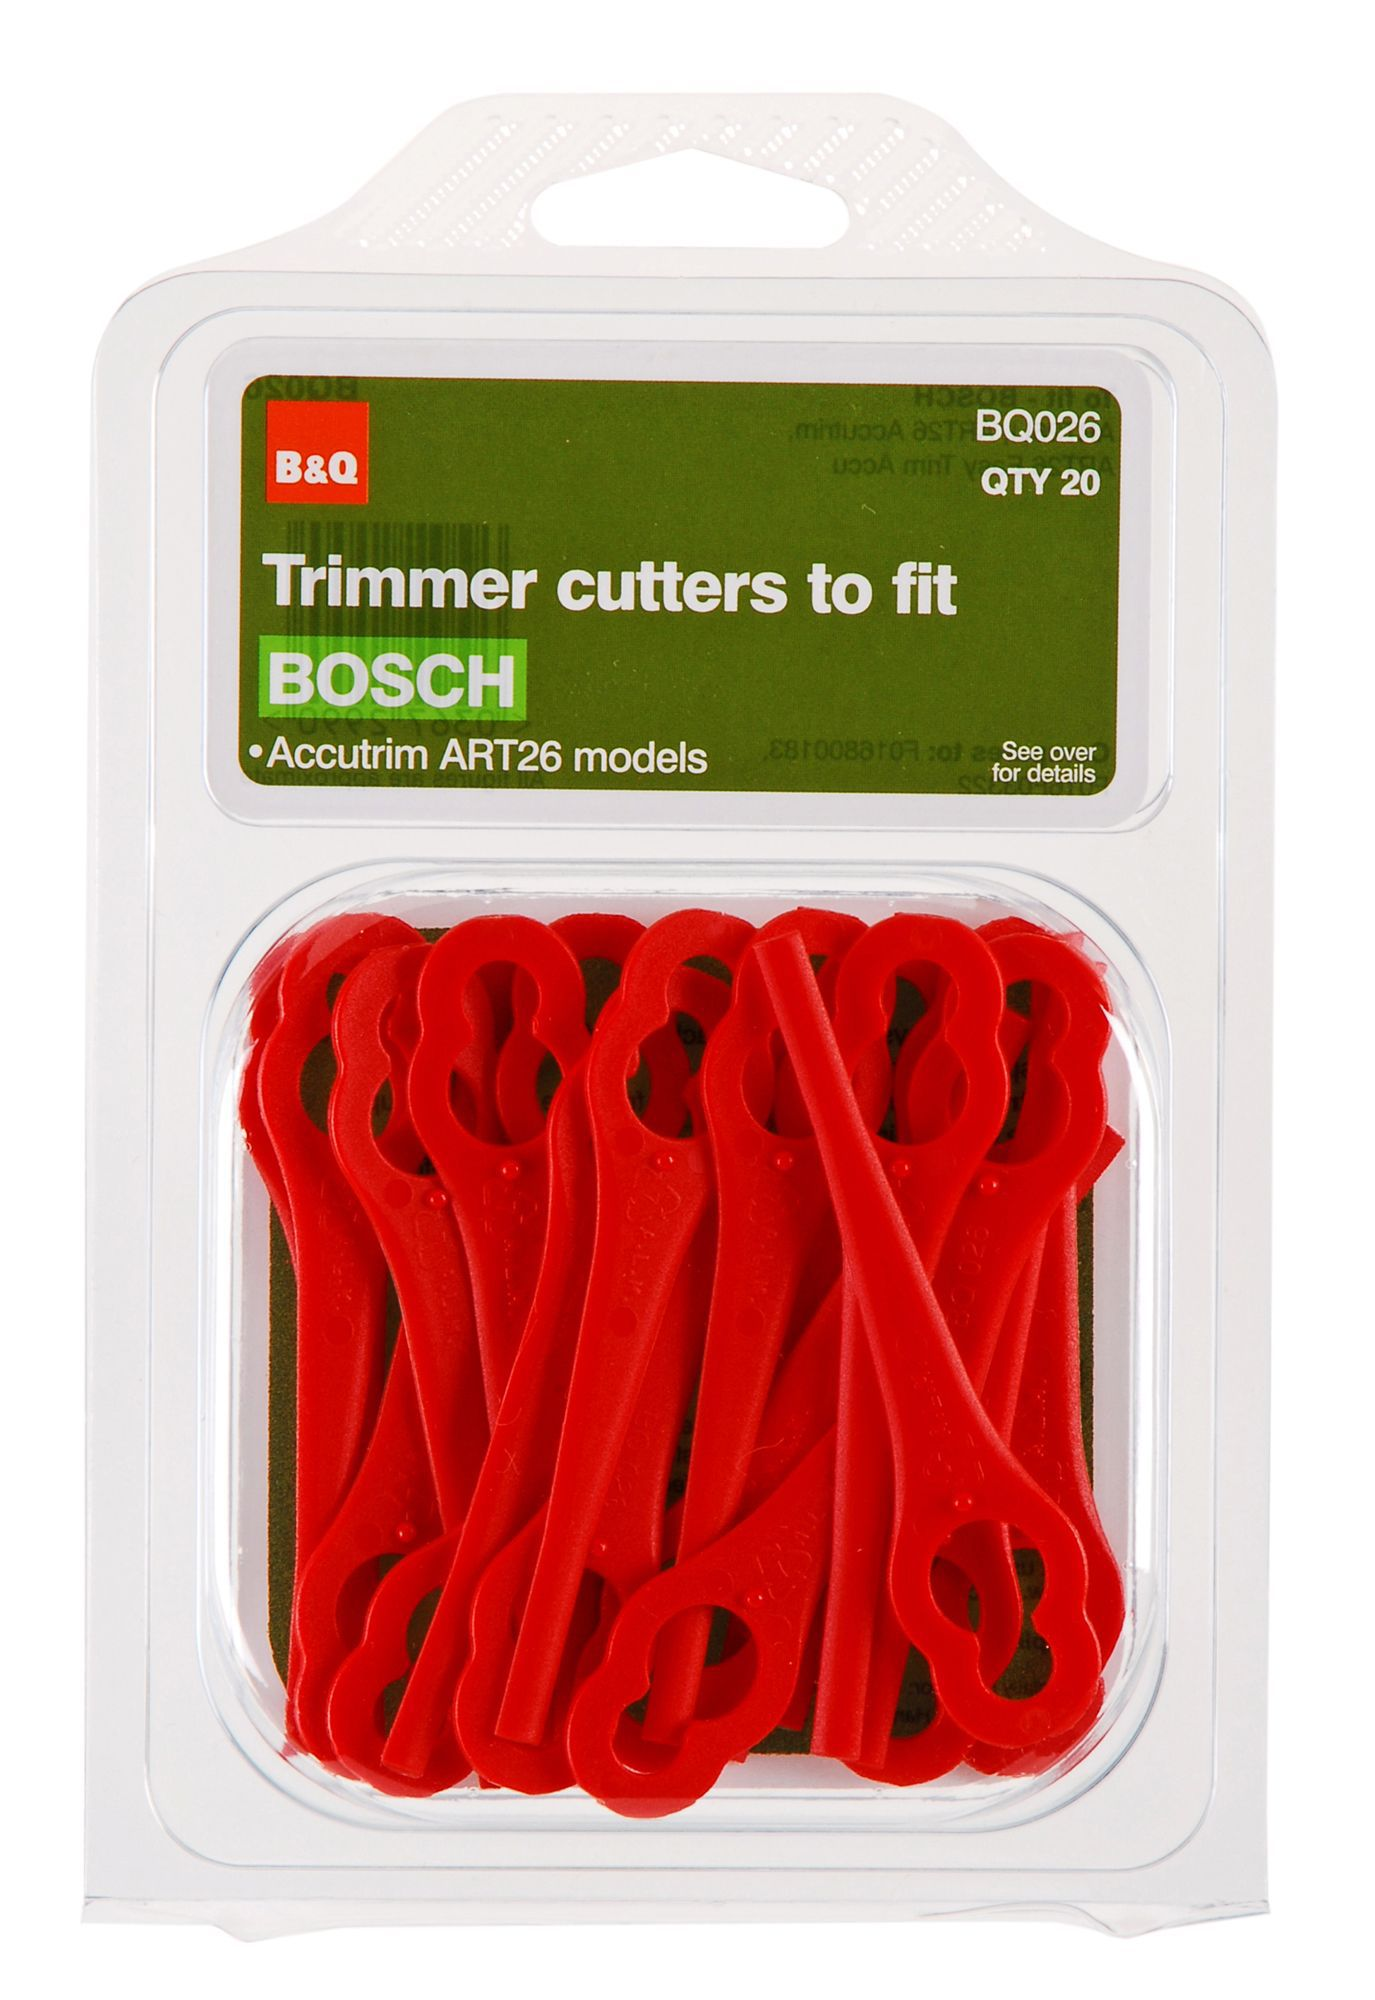 B&q Trimmer Cutters Replacement Plastic Blades